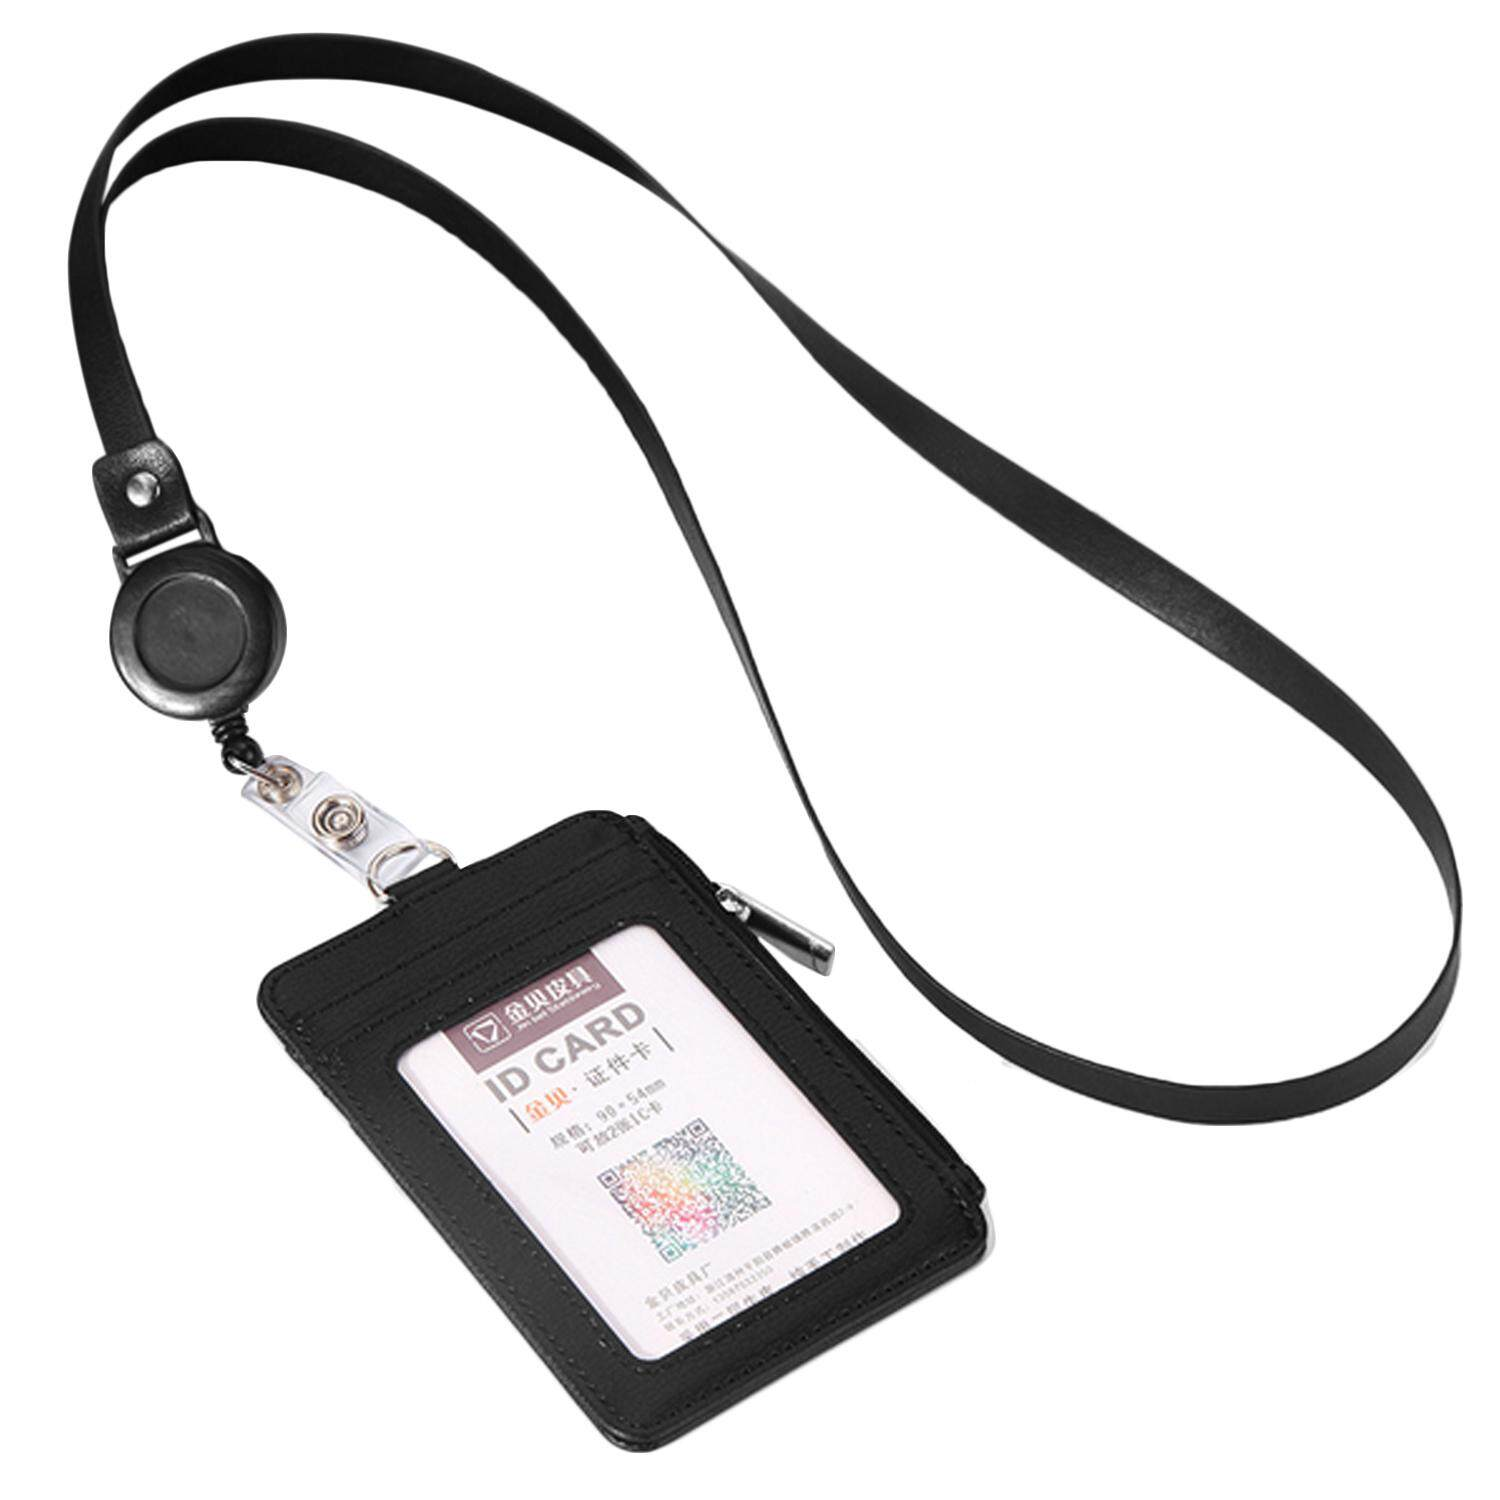 5d009610bc4e Multi-functional PU Leather ID Card Badge Holder Protector Case Cover Wallet  with 5 Card